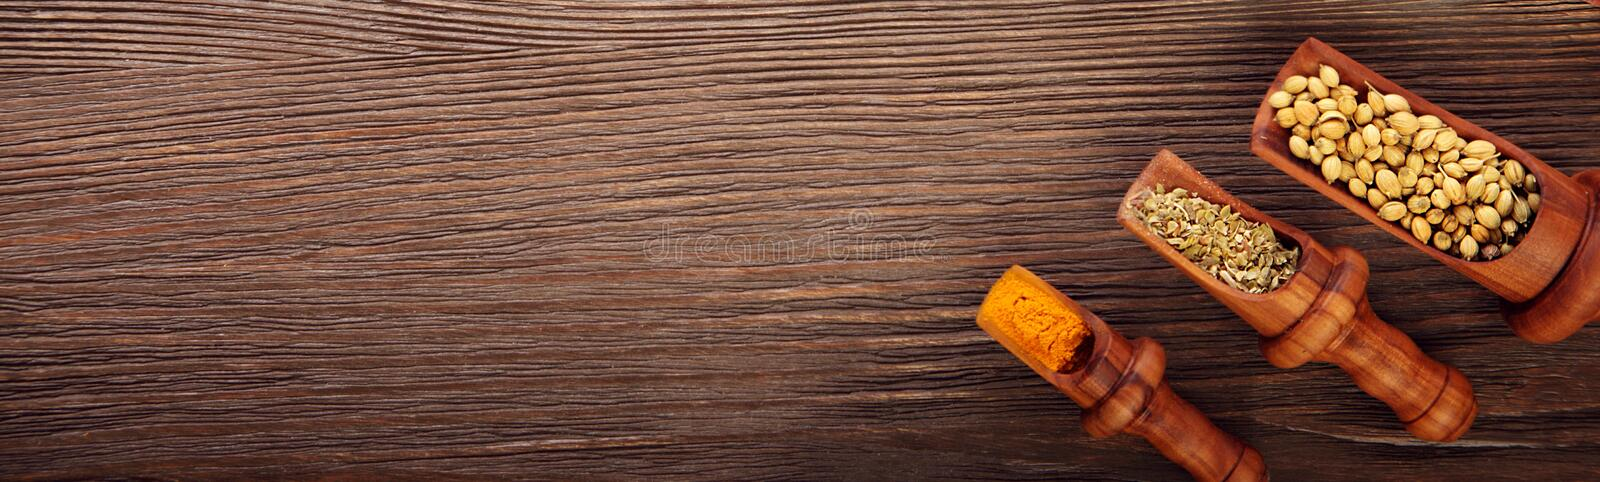 Various fragrant Herbs and Spices over wooden background stock image